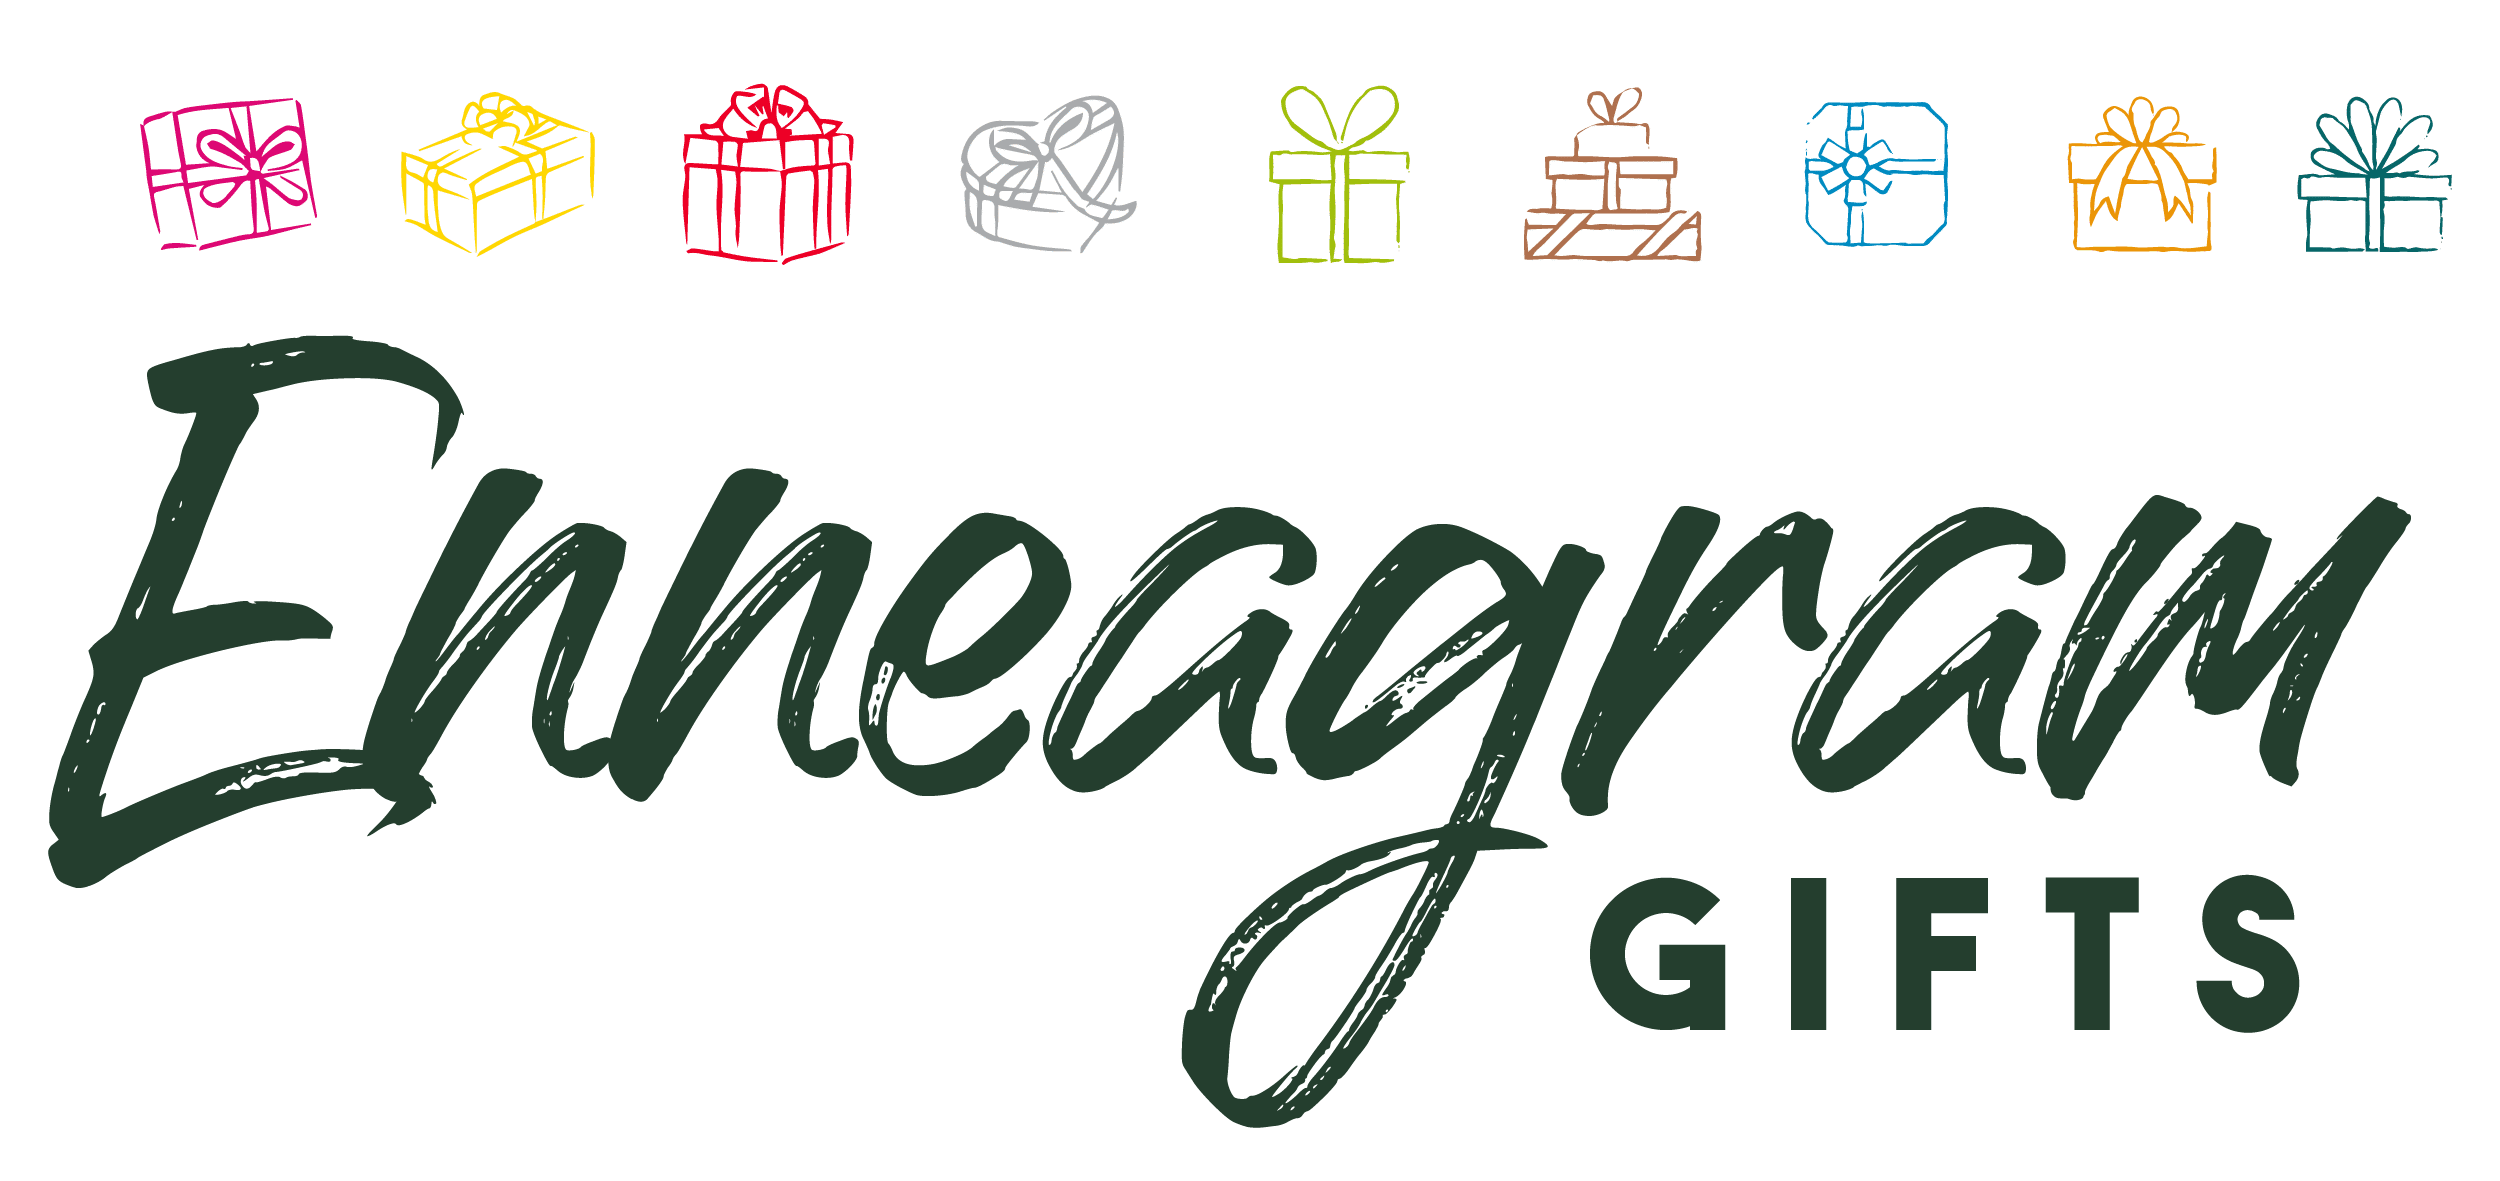 Enneagram Gifts